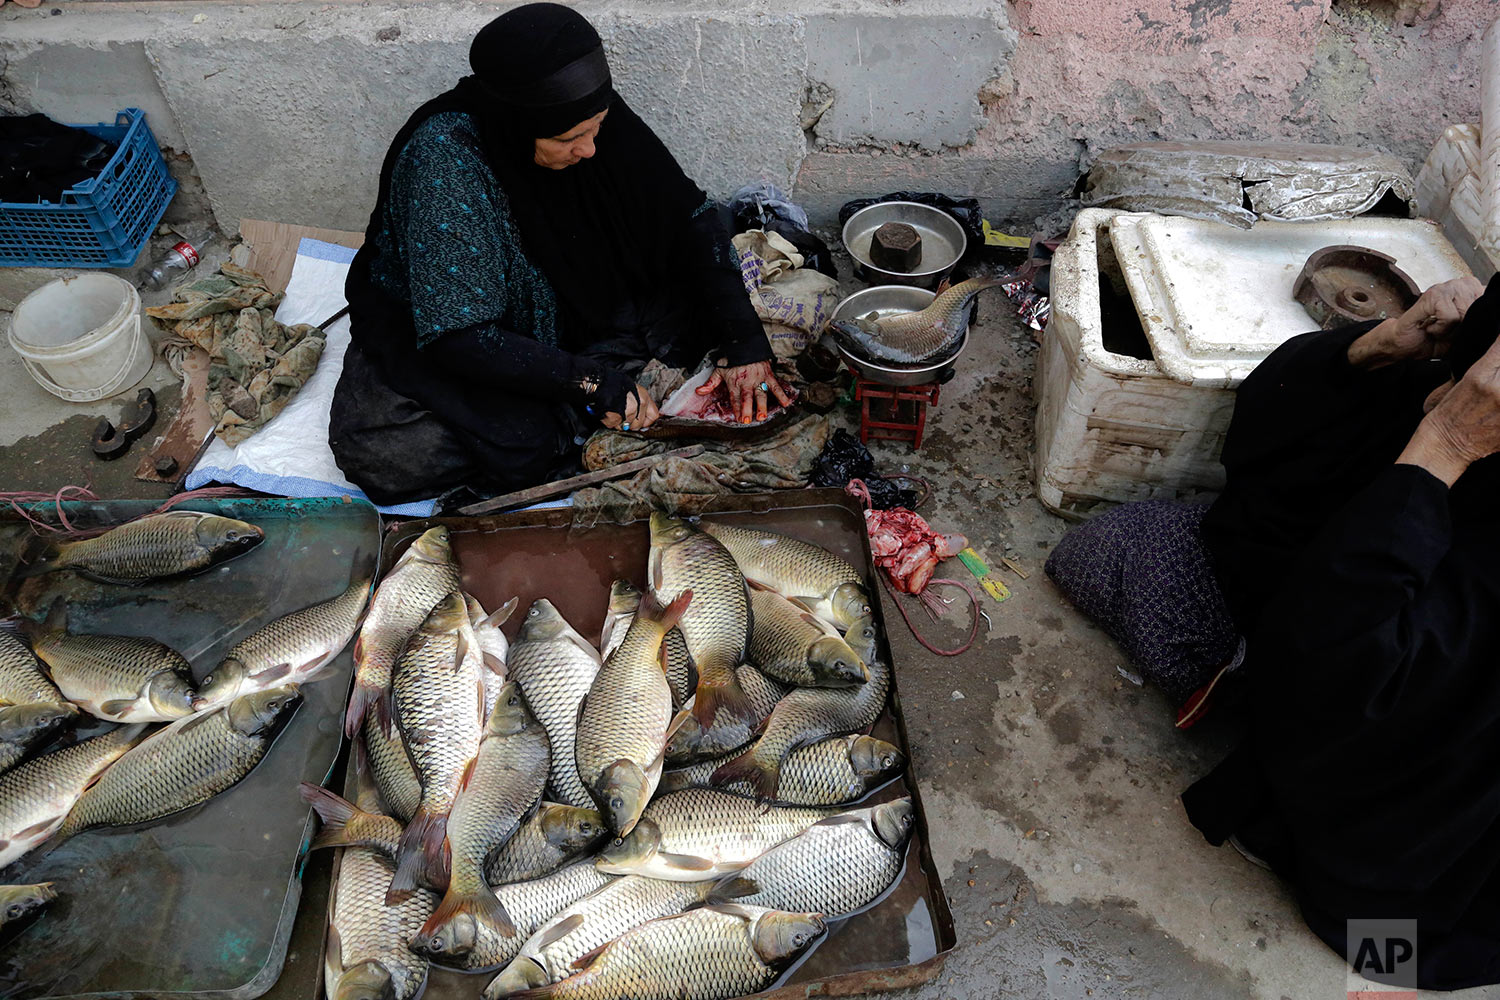 In this Sept. 11, 2017 photo, women gut and sell fish at a market in central Chabaish, Iraq. In the largely agrarian society in Iraq's vast wetlands, women make up a sizeable proportion of the workforce, fishing, raising buffalo and selling in local markets. (AP Photo/Susannah George)